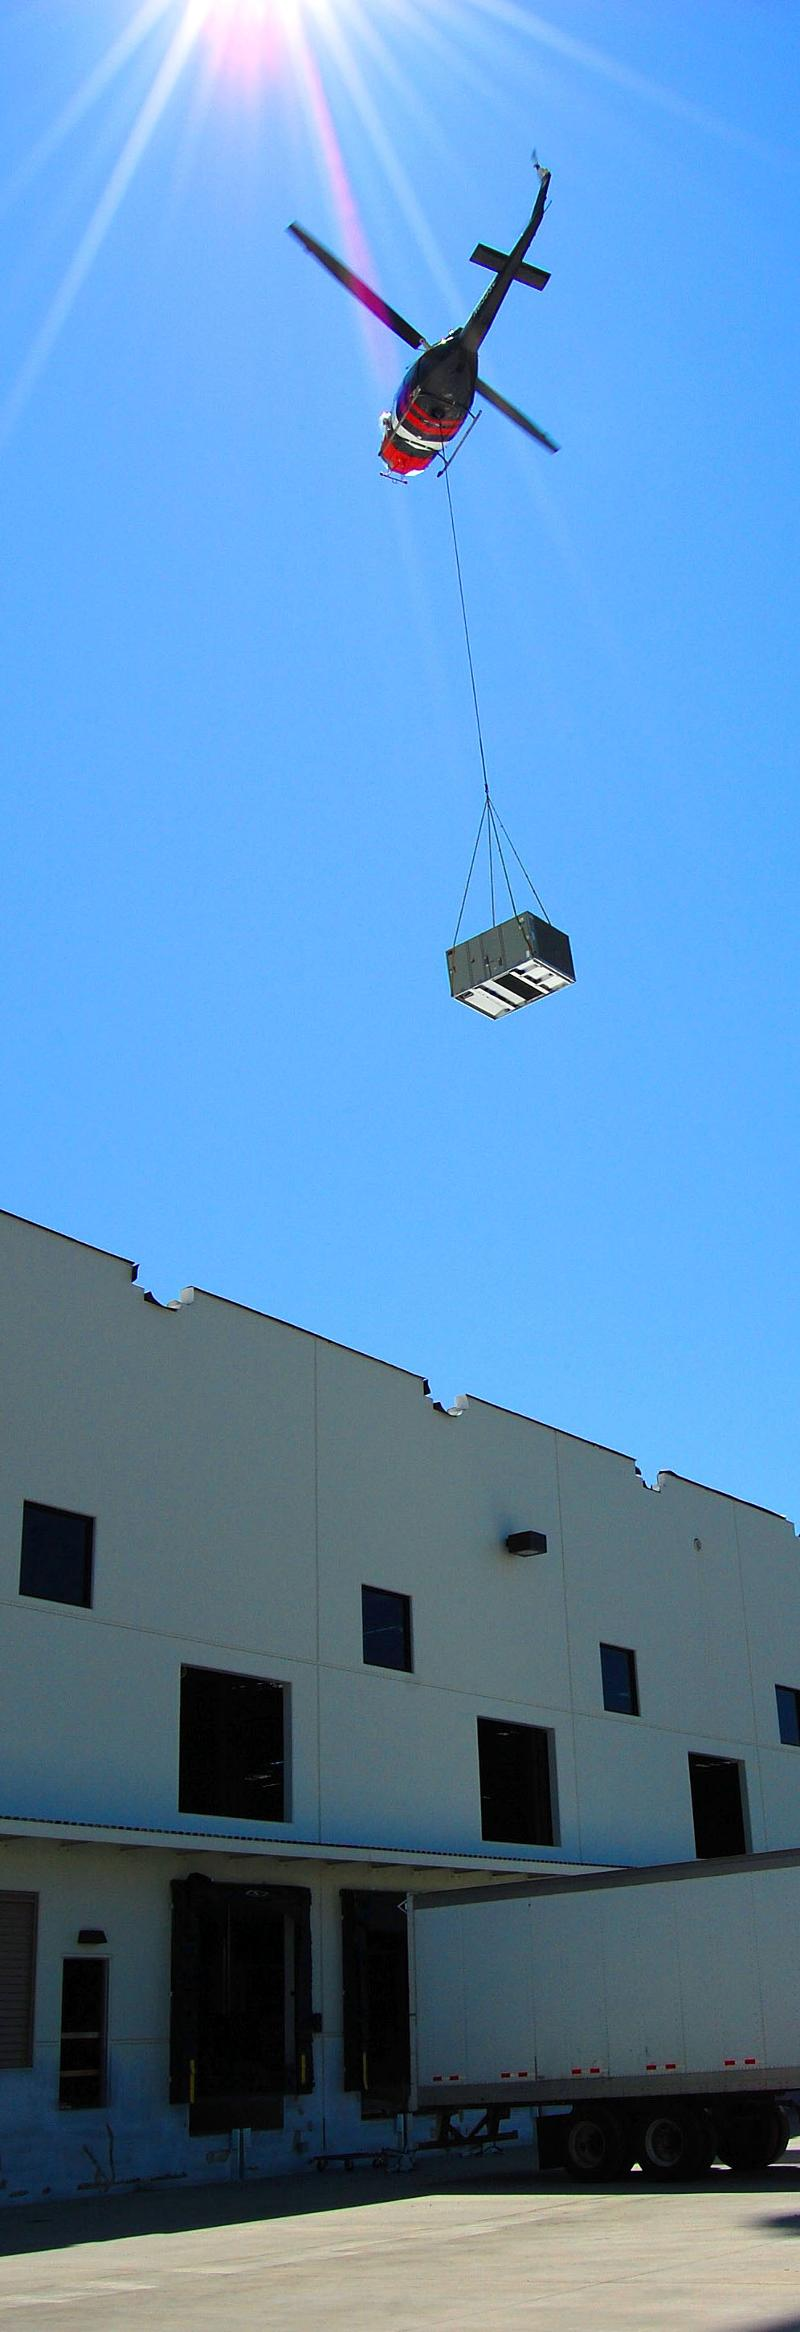 Helicopter flying HVAC Unit Over Amazon Distribution Center